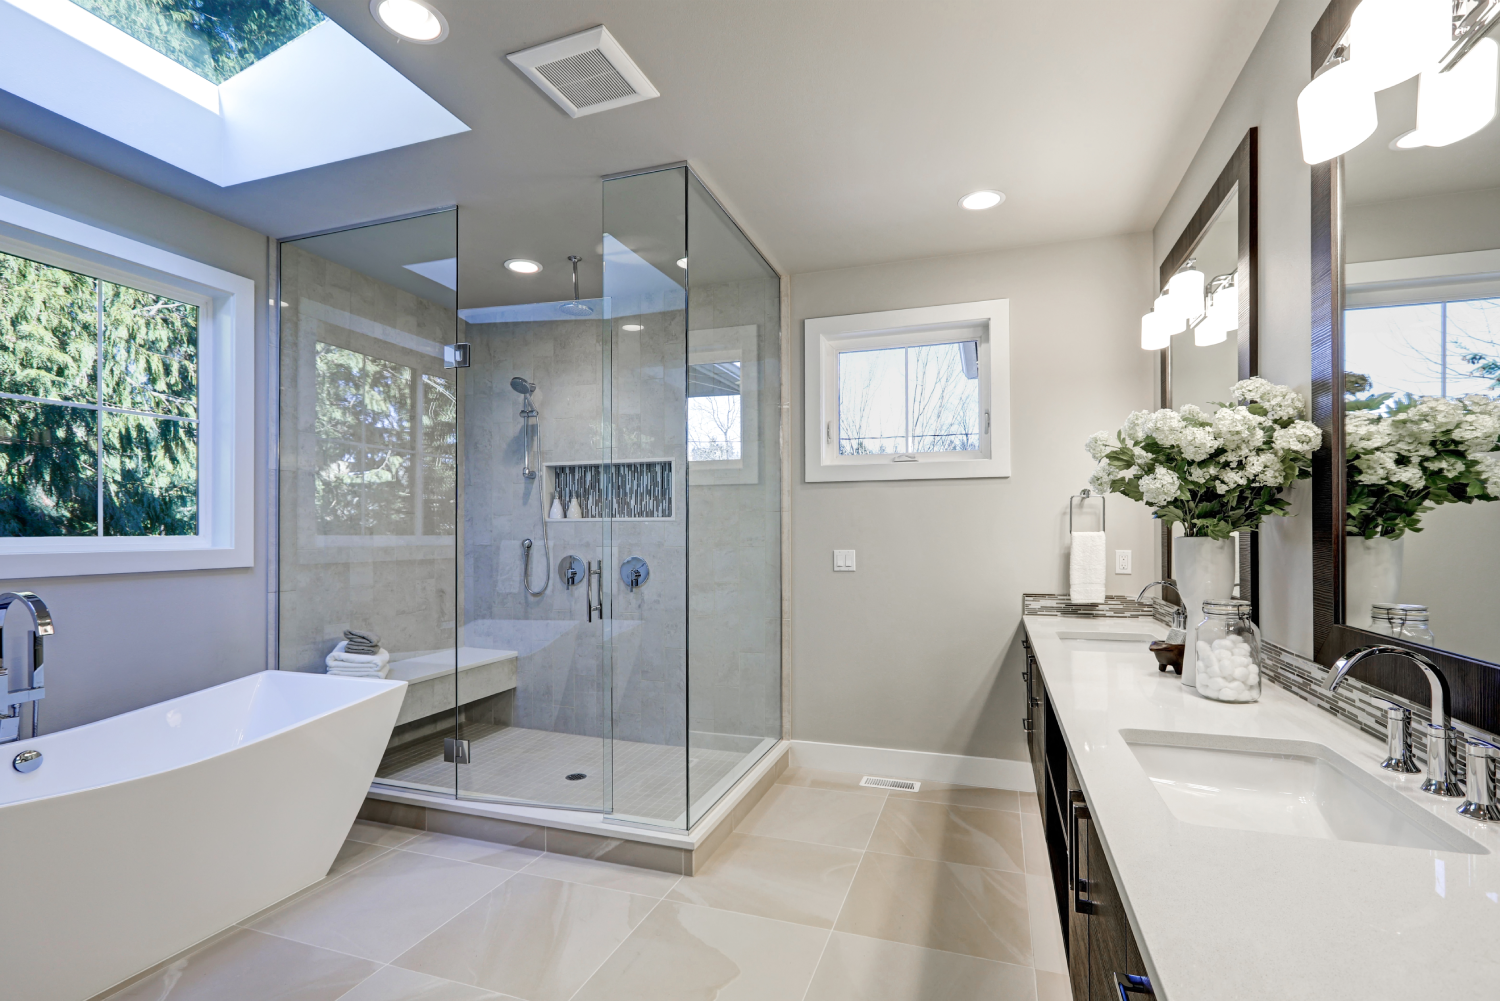 Bathroom Renovation Services in Newtown Square